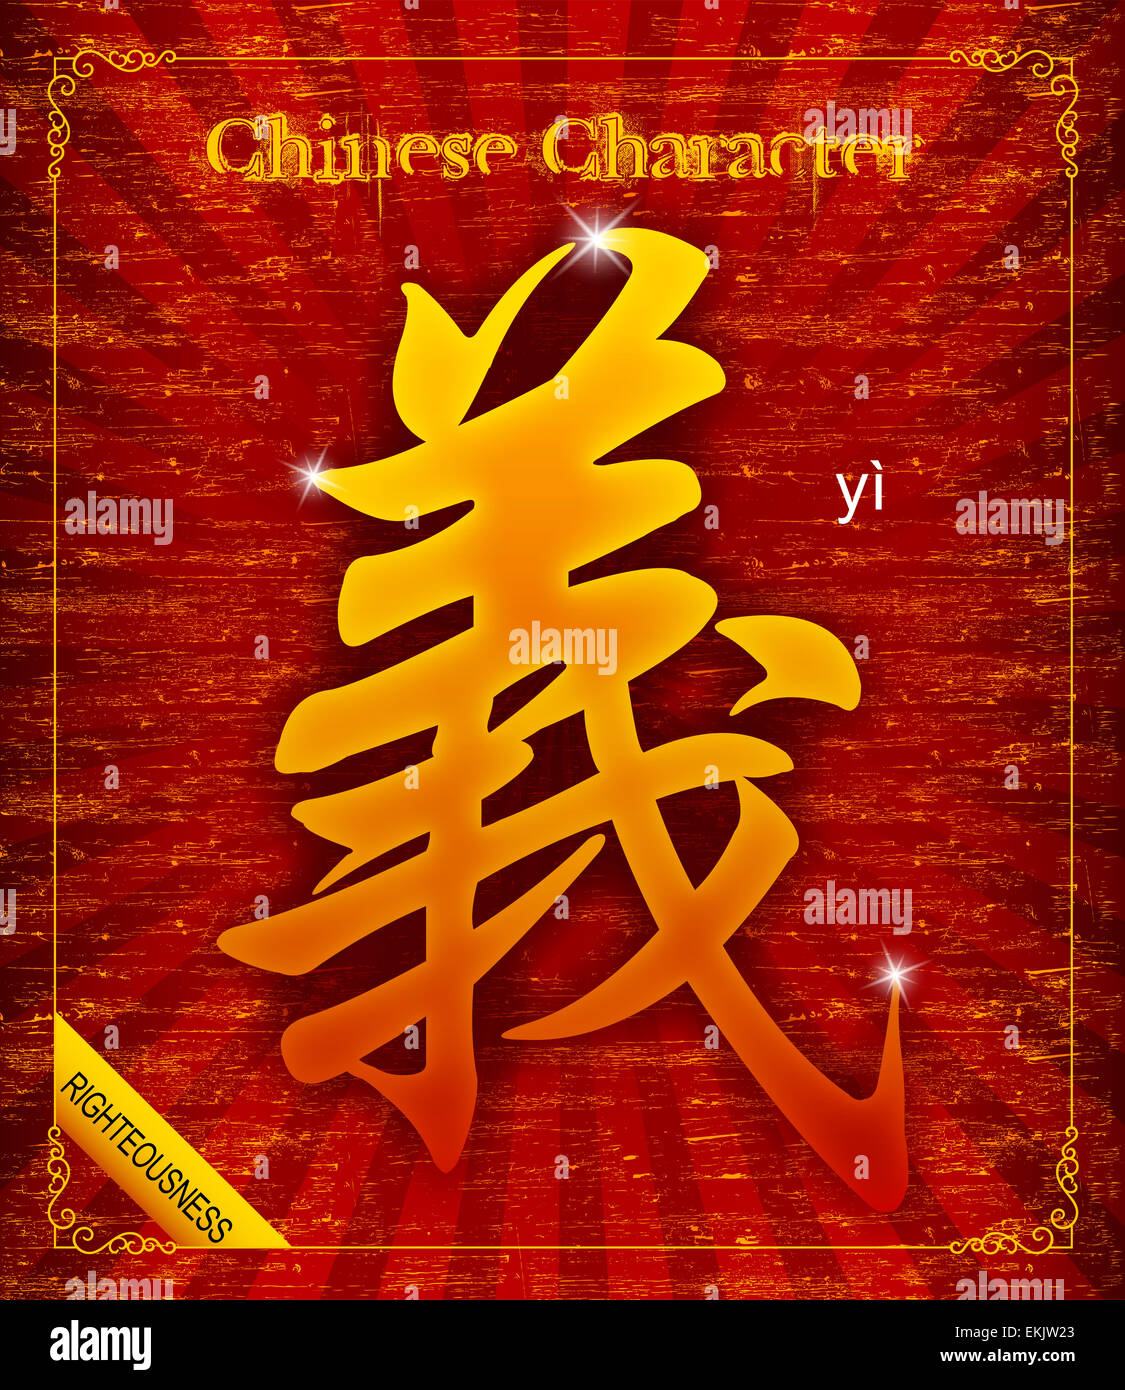 Vector Chinese character symbol about-Righteousness or justice - Stock Image